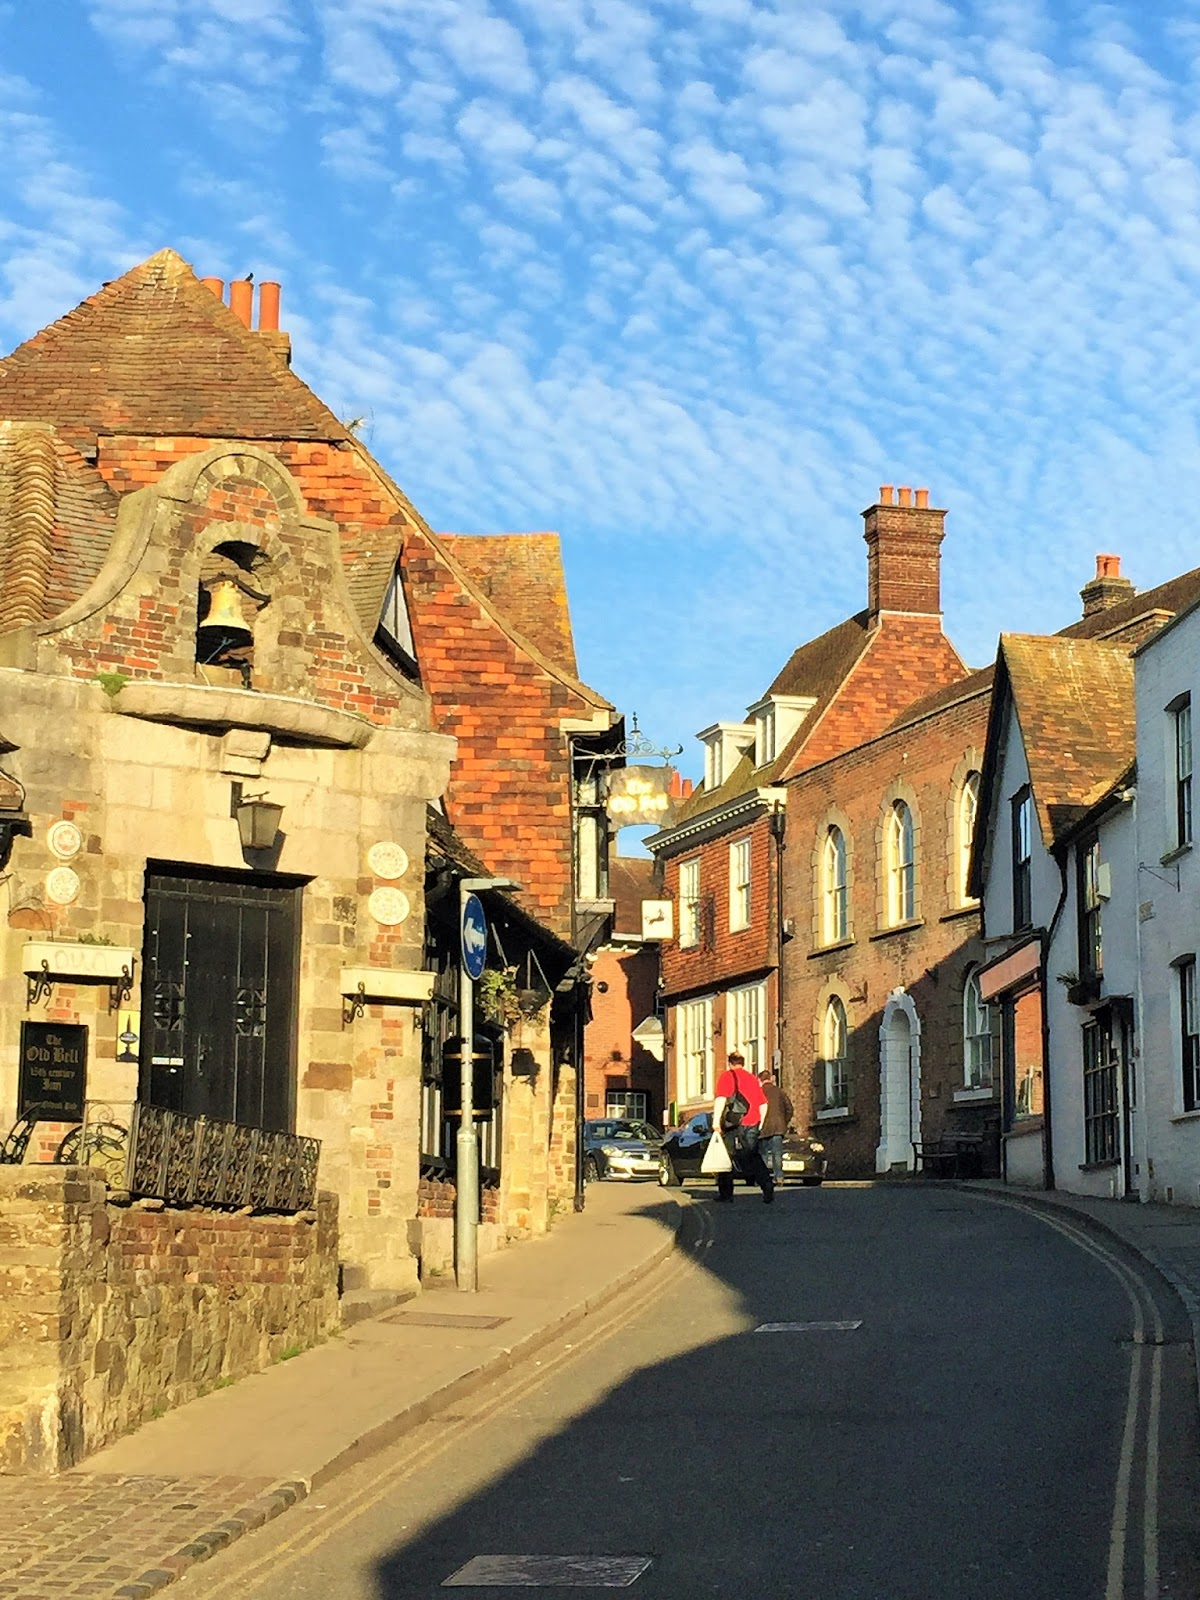 Rye, Sussex photo by Modern Bric a Brac